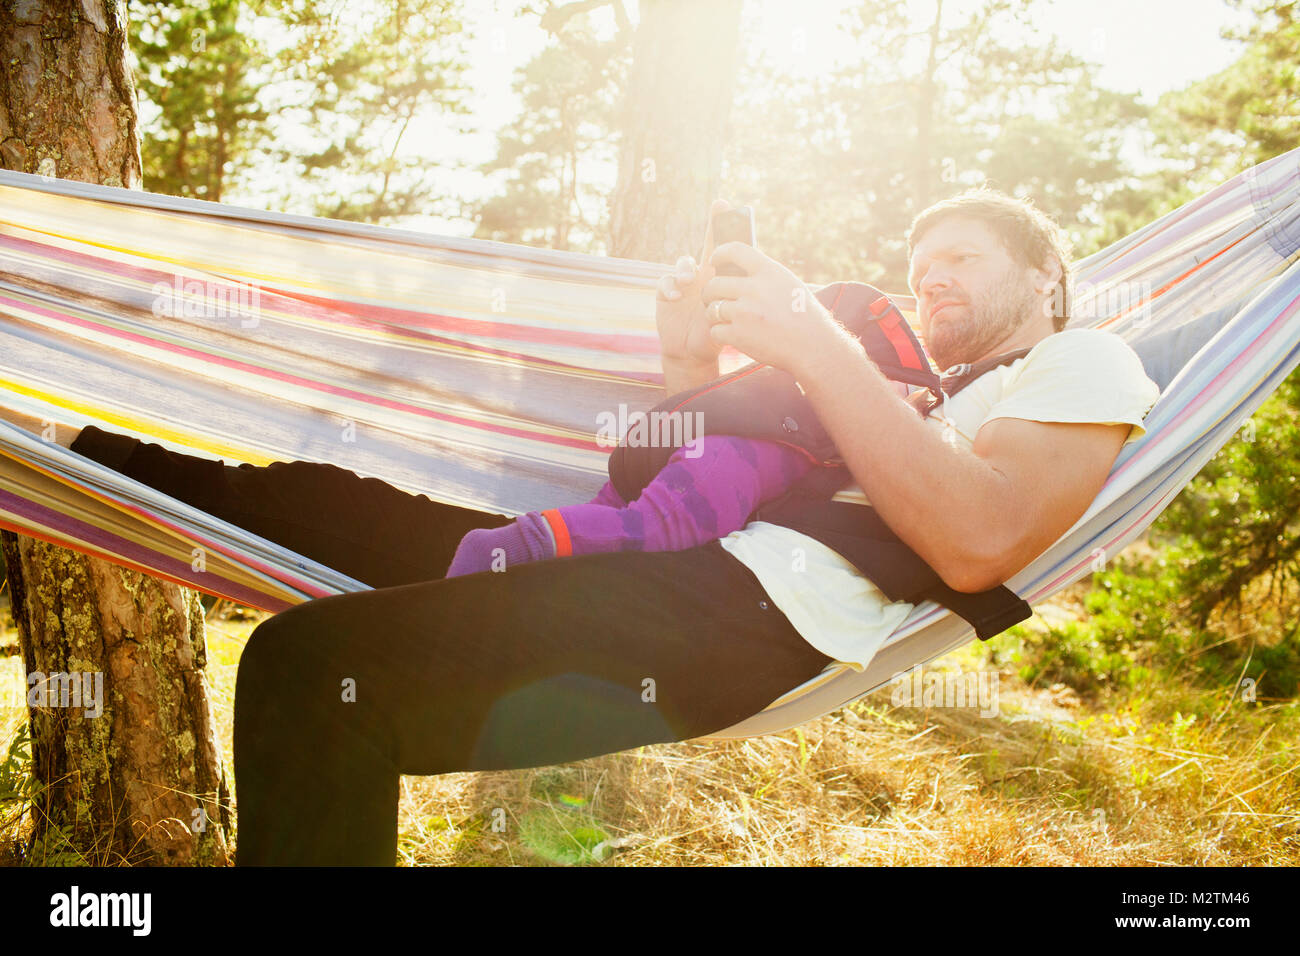 Father and baby girl on hammock - Stock Image